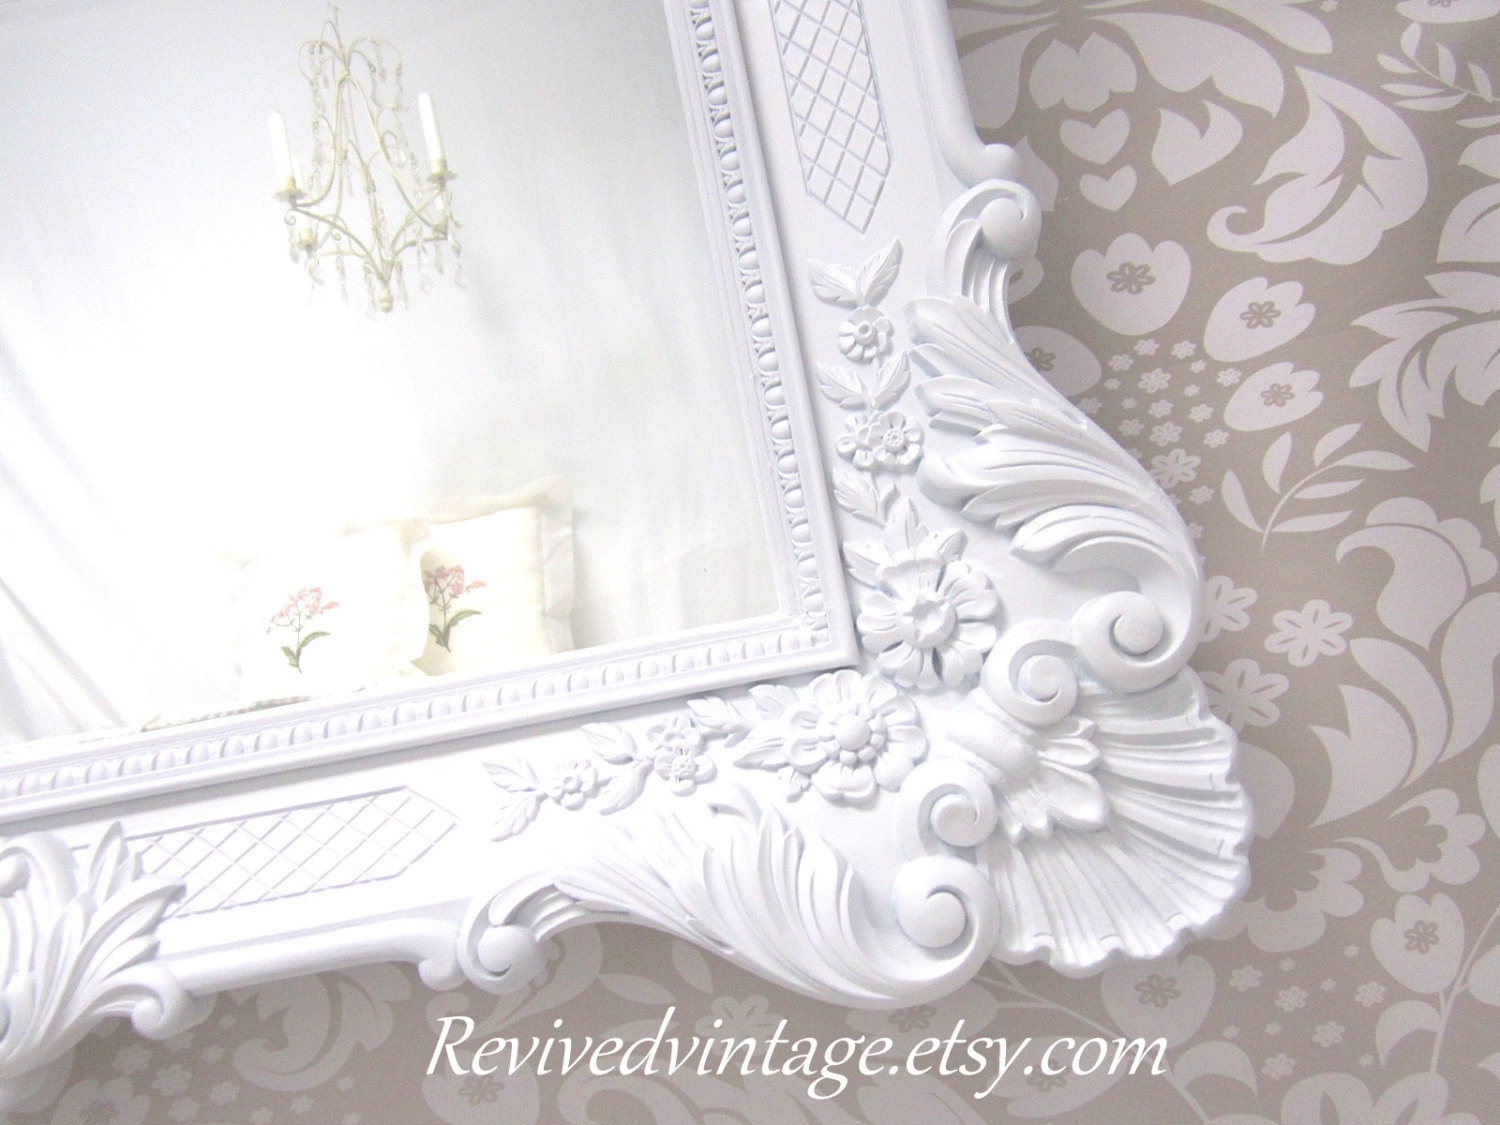 French Country Mirrors For Sale Framed White Mirror Pertaining To French Mirrors For Sale (Image 5 of 15)